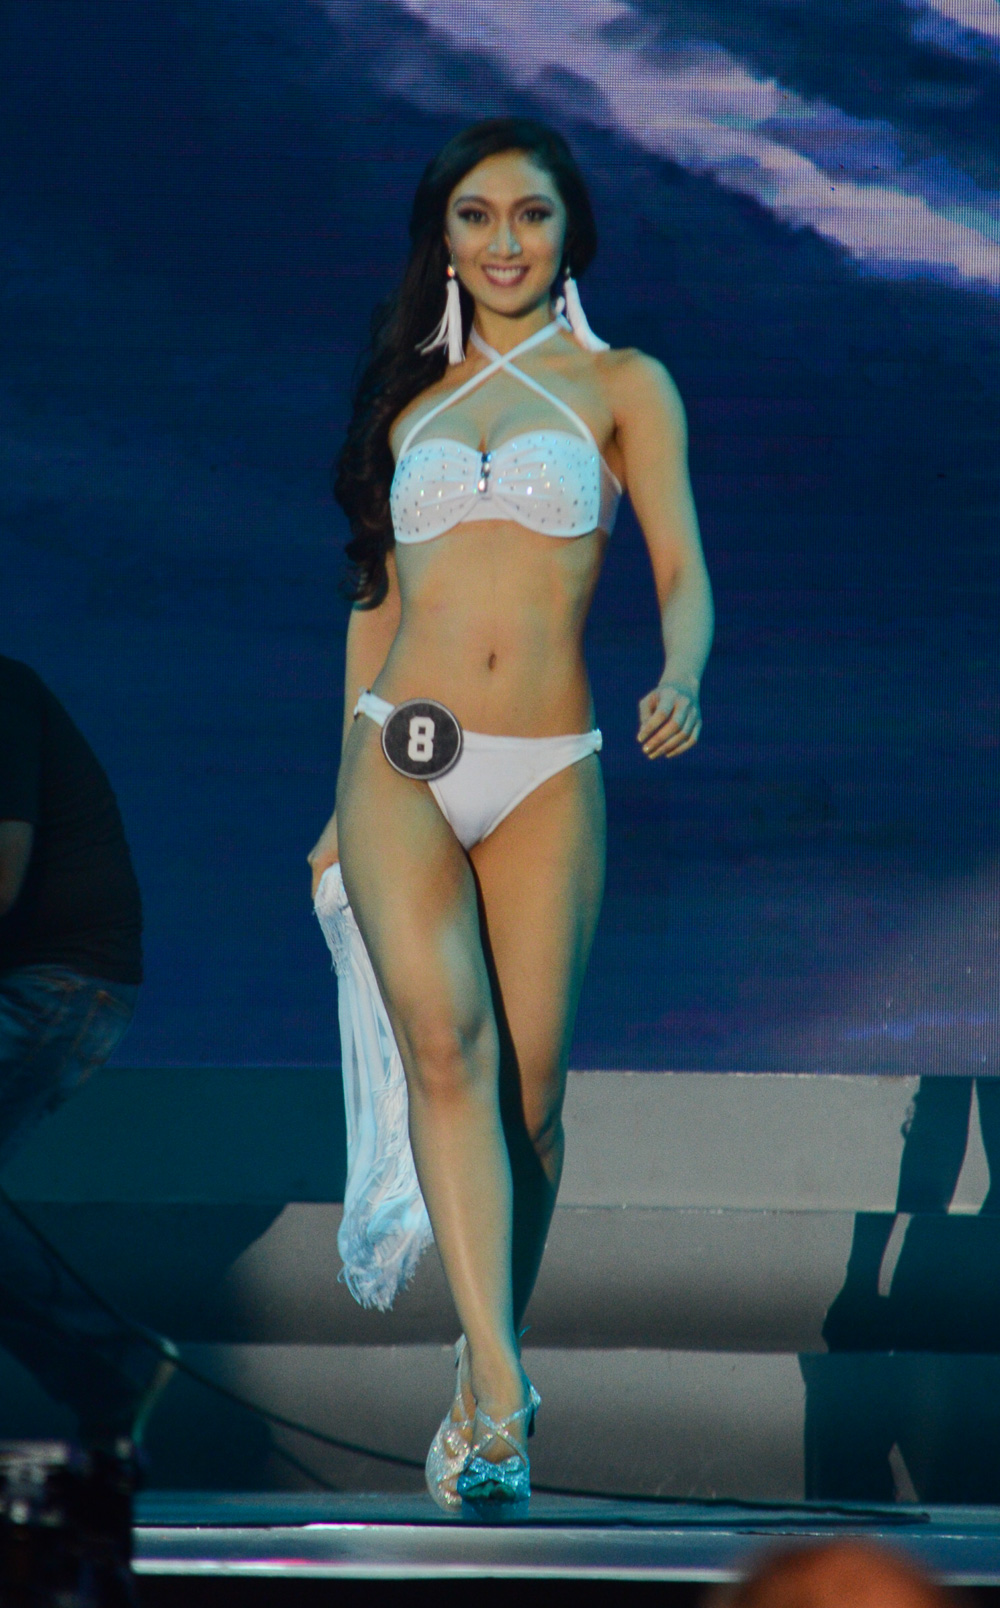 WATCH: Bb Pilipinas 2016 swimsuit competition at